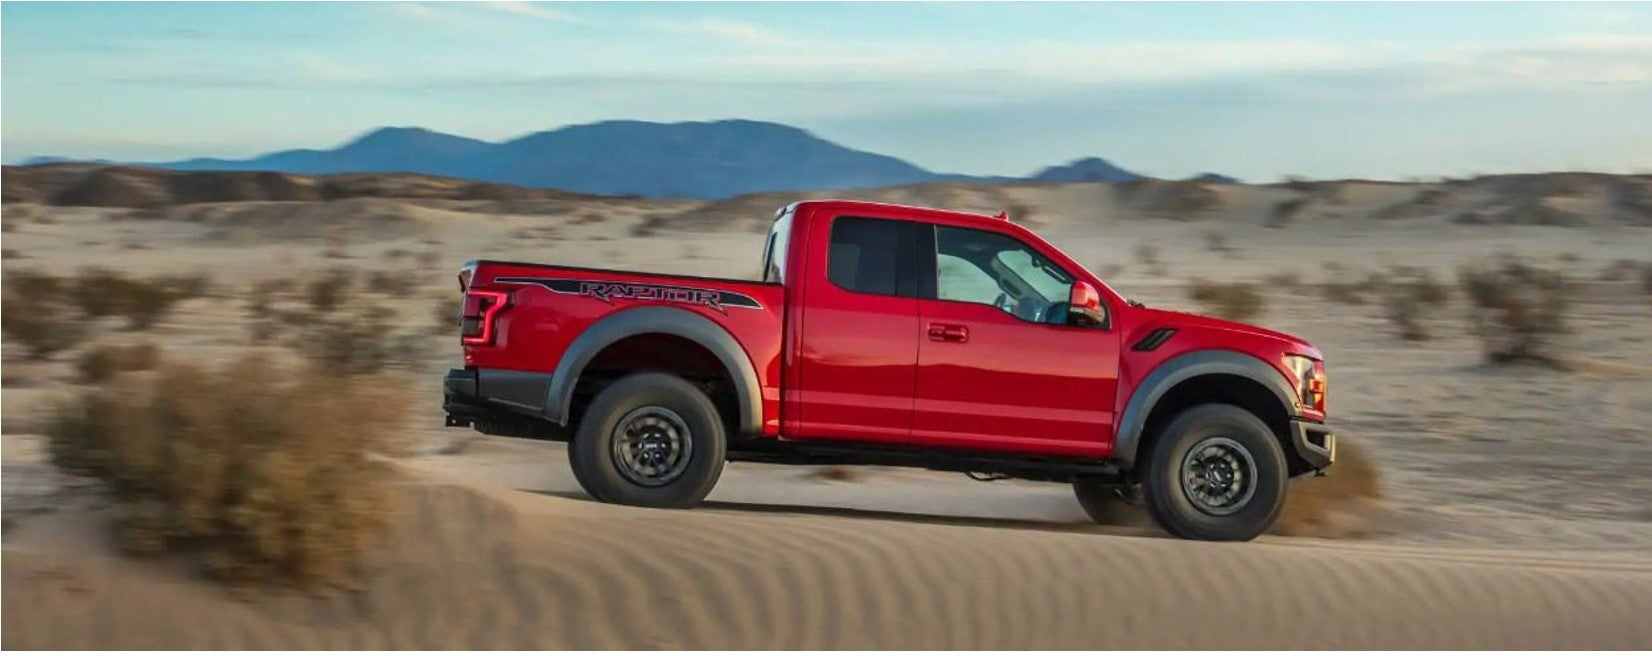 2020 Ford F 150 Raptor Price Specs Performance Mckie Ford